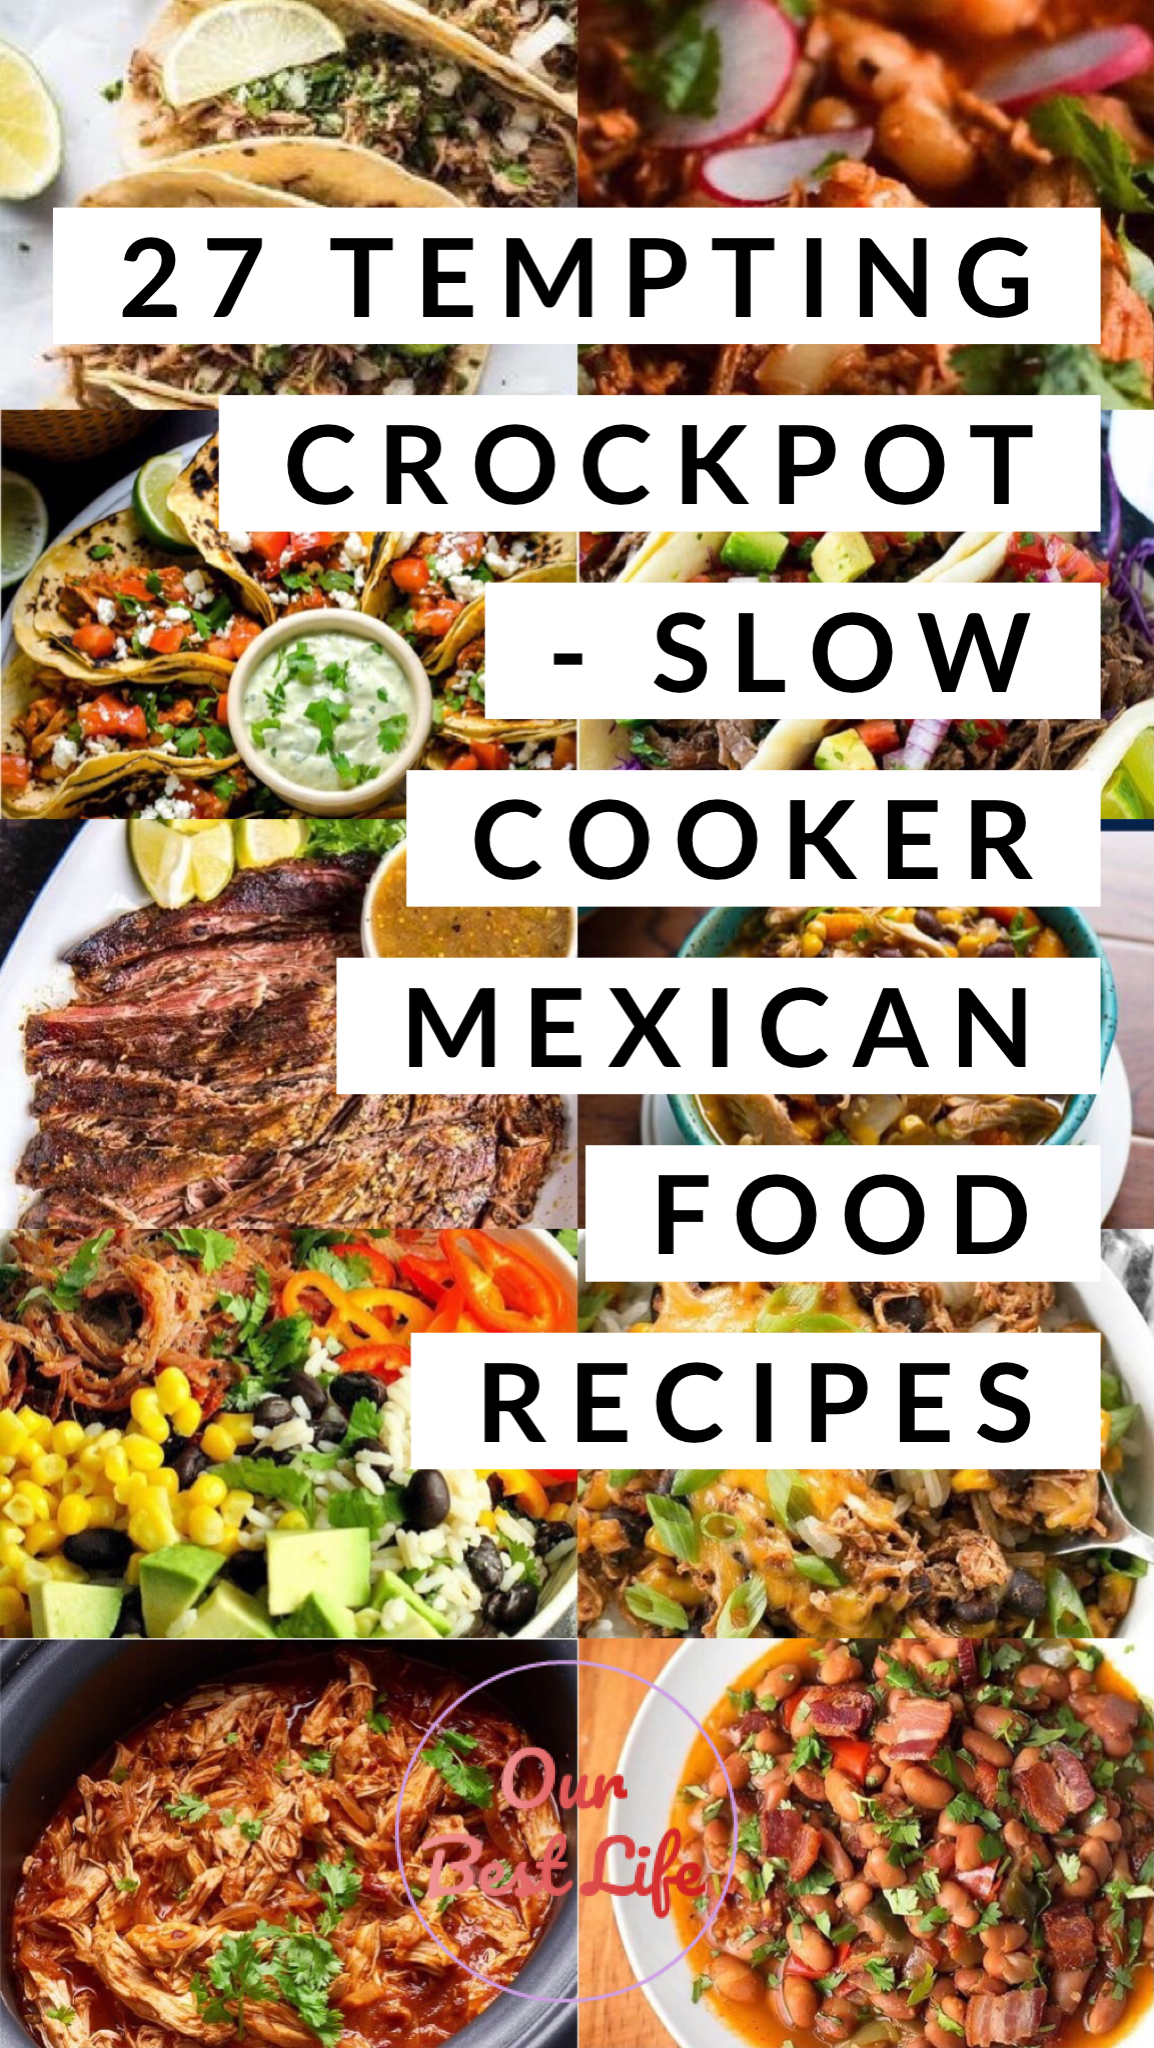 27 Tempting Crockpot - Slow Cooker, Mexican Food Recipes - Our Best Life #mexicanfoodrecipes